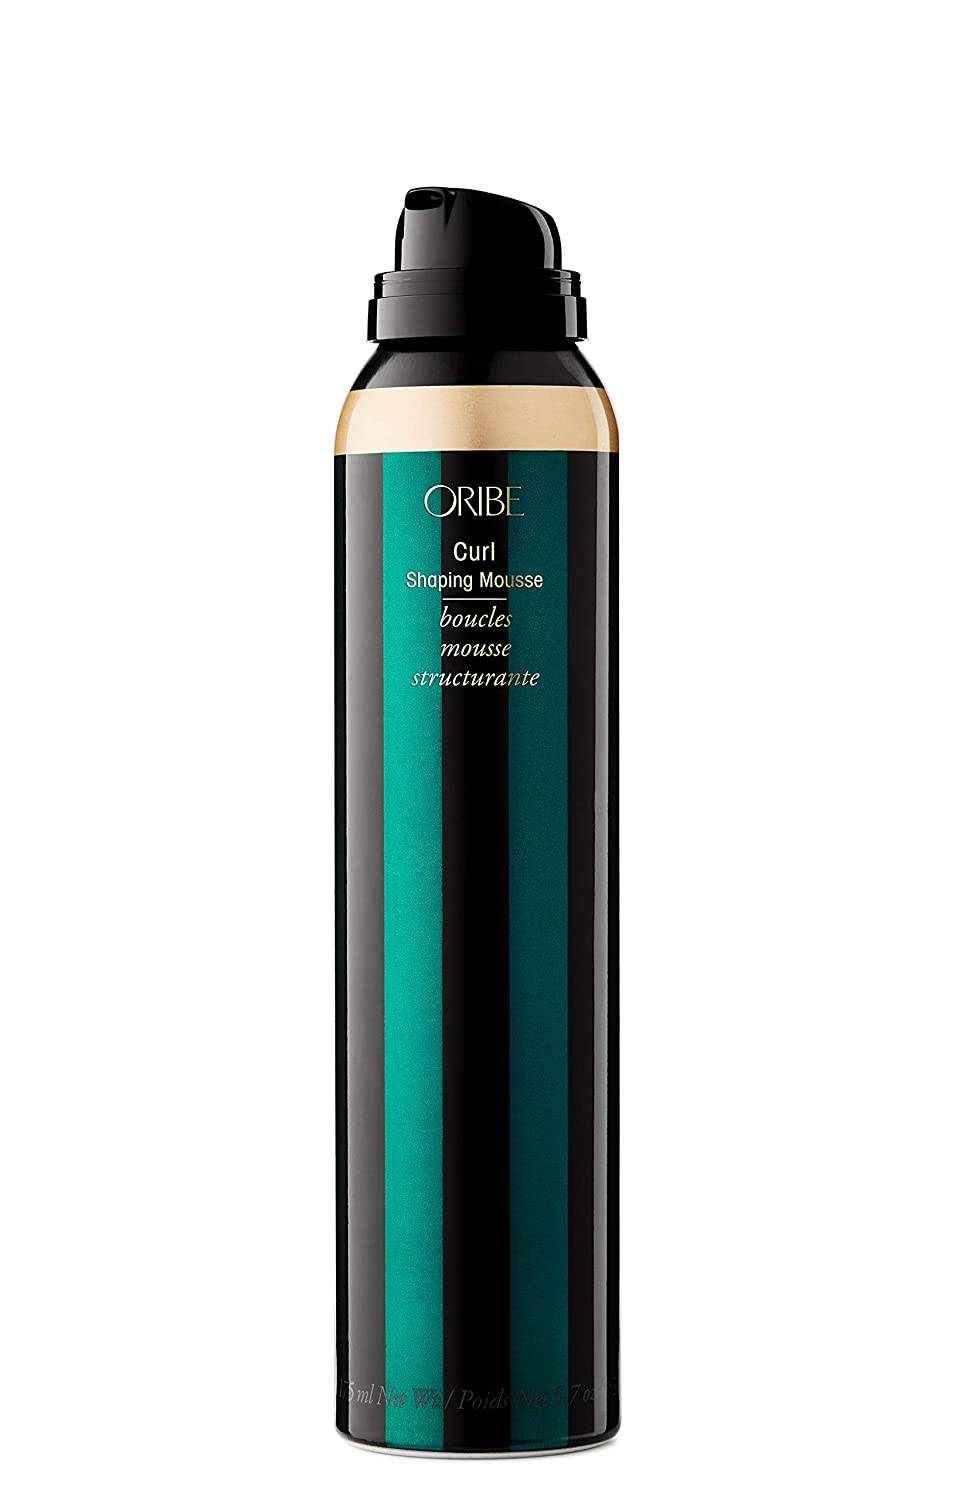 Oribe Curl Shaping Mousse for Curly & Wavy Hair